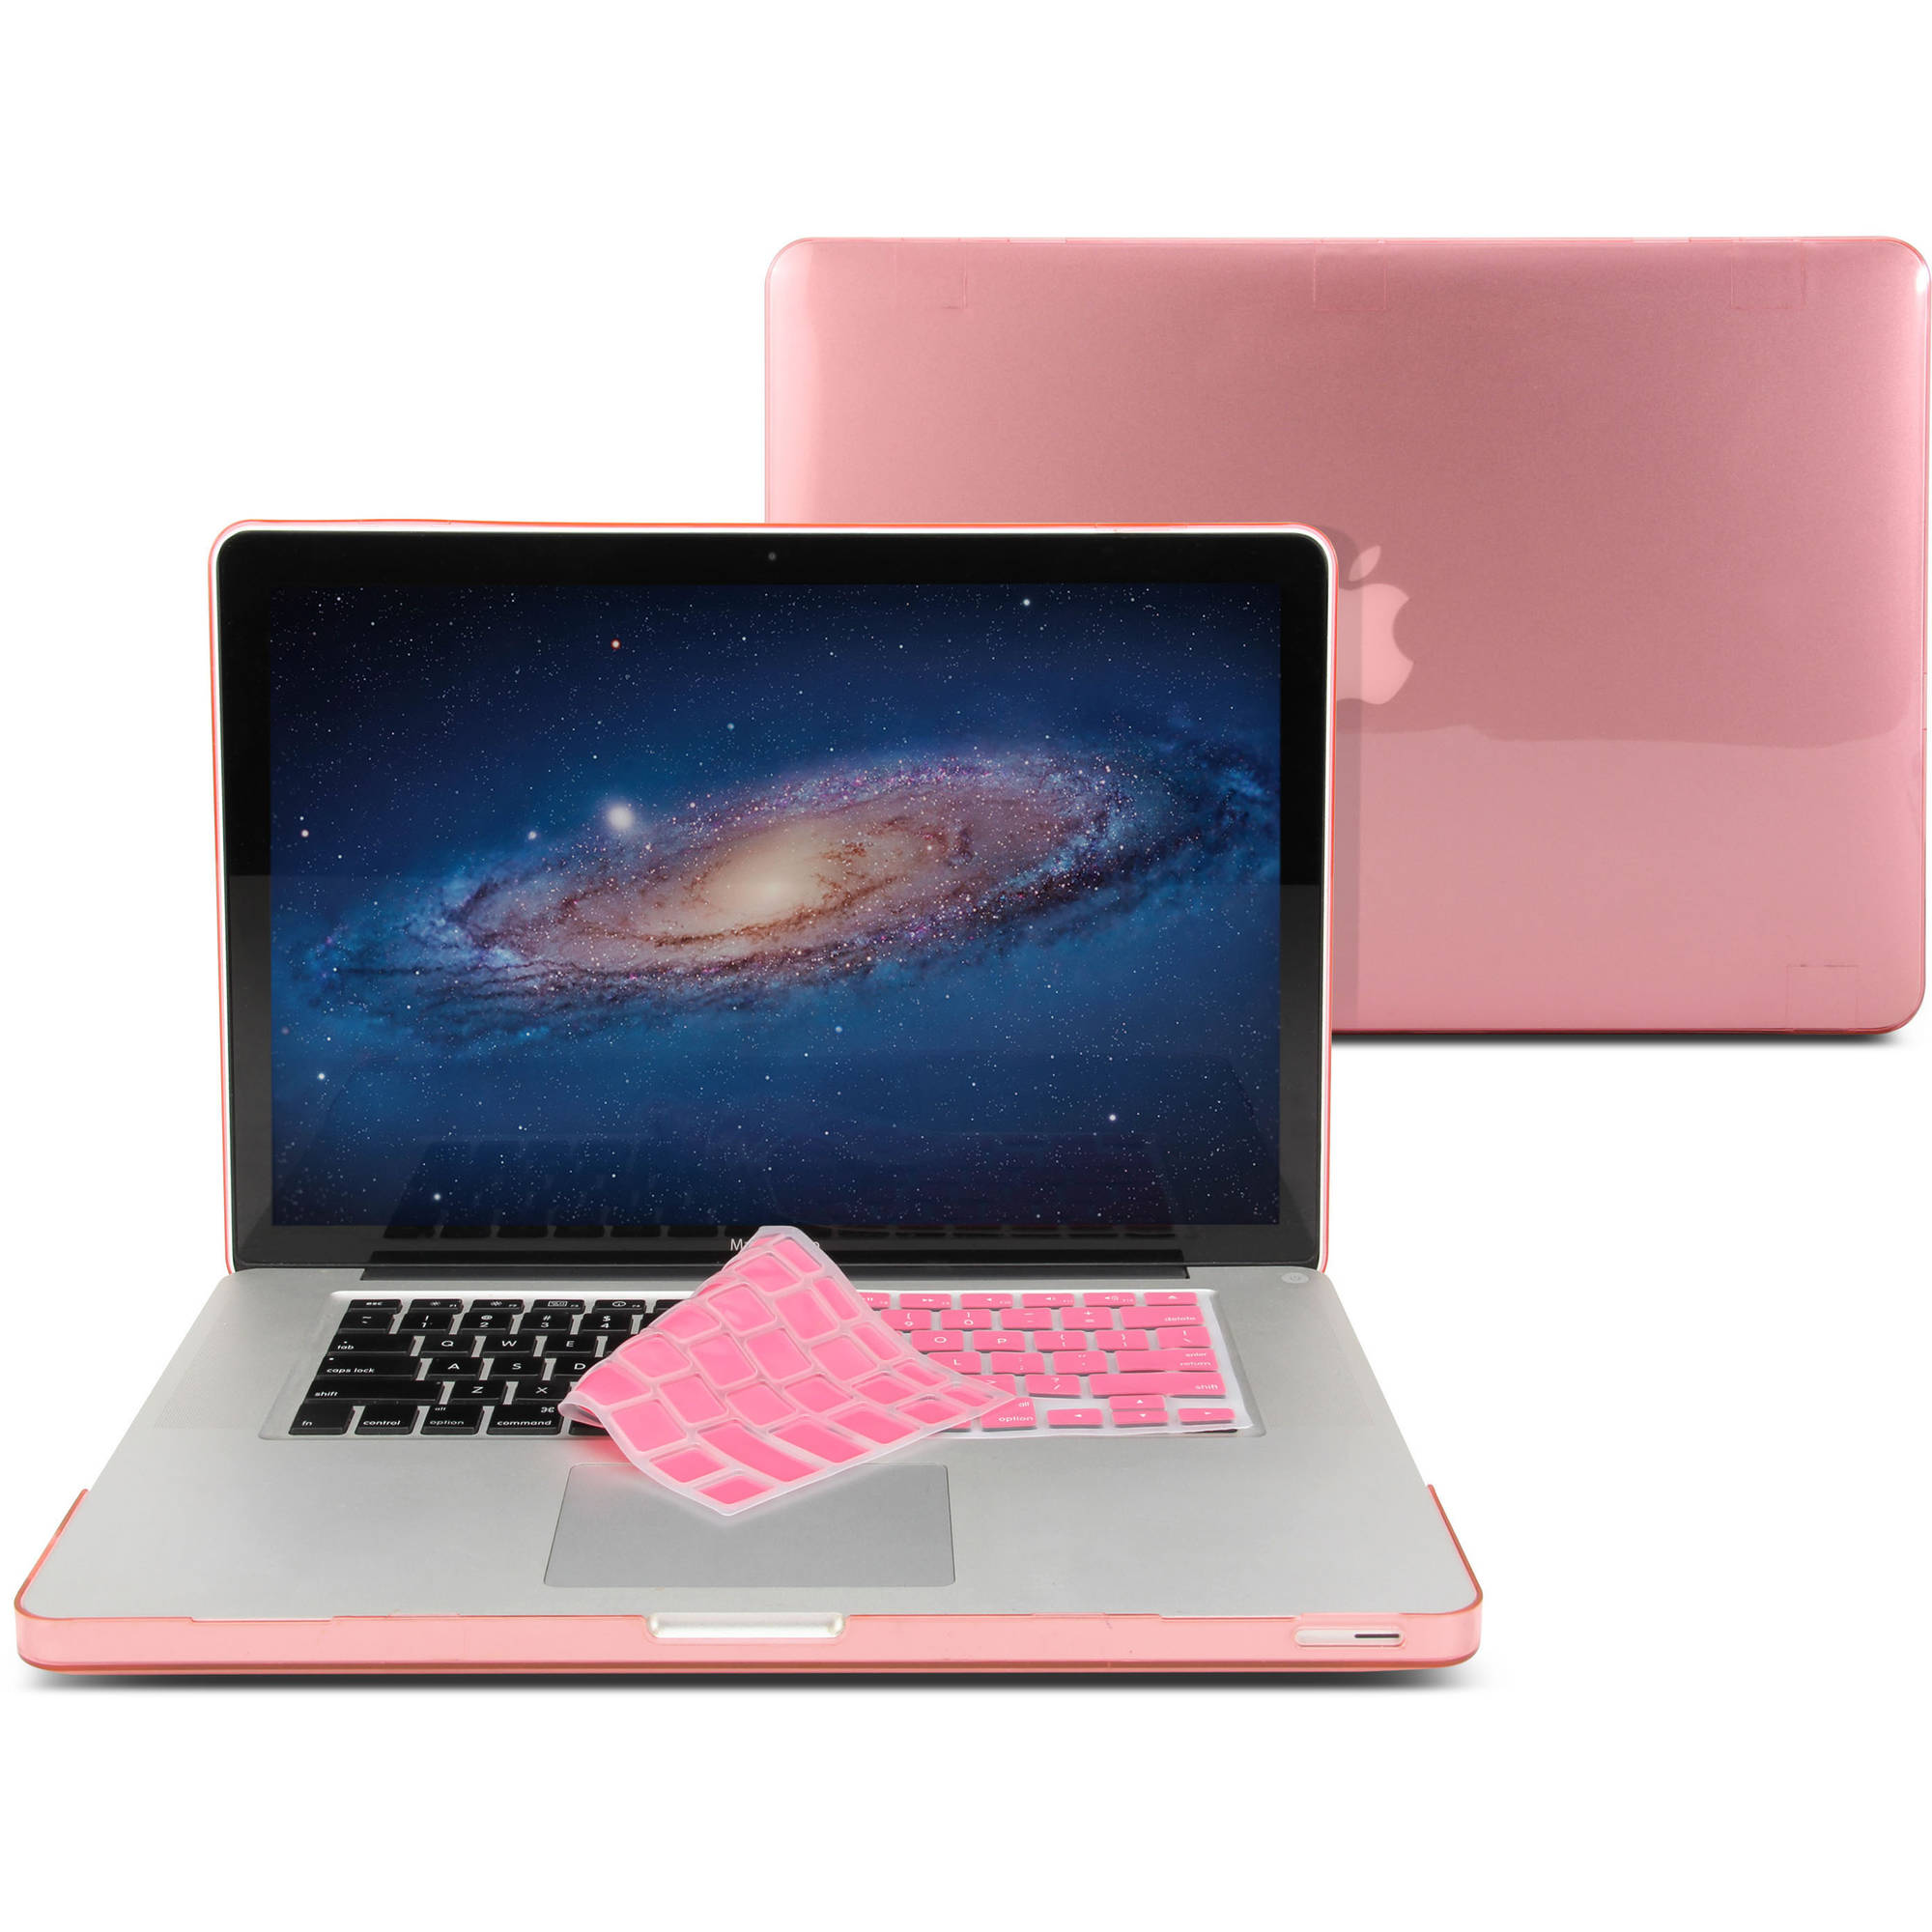 "Hard Case Glossy for MacBook Pro 15"" with Pink Keyboard Cover (Not fit for MacBook Pro 15 Retina)"